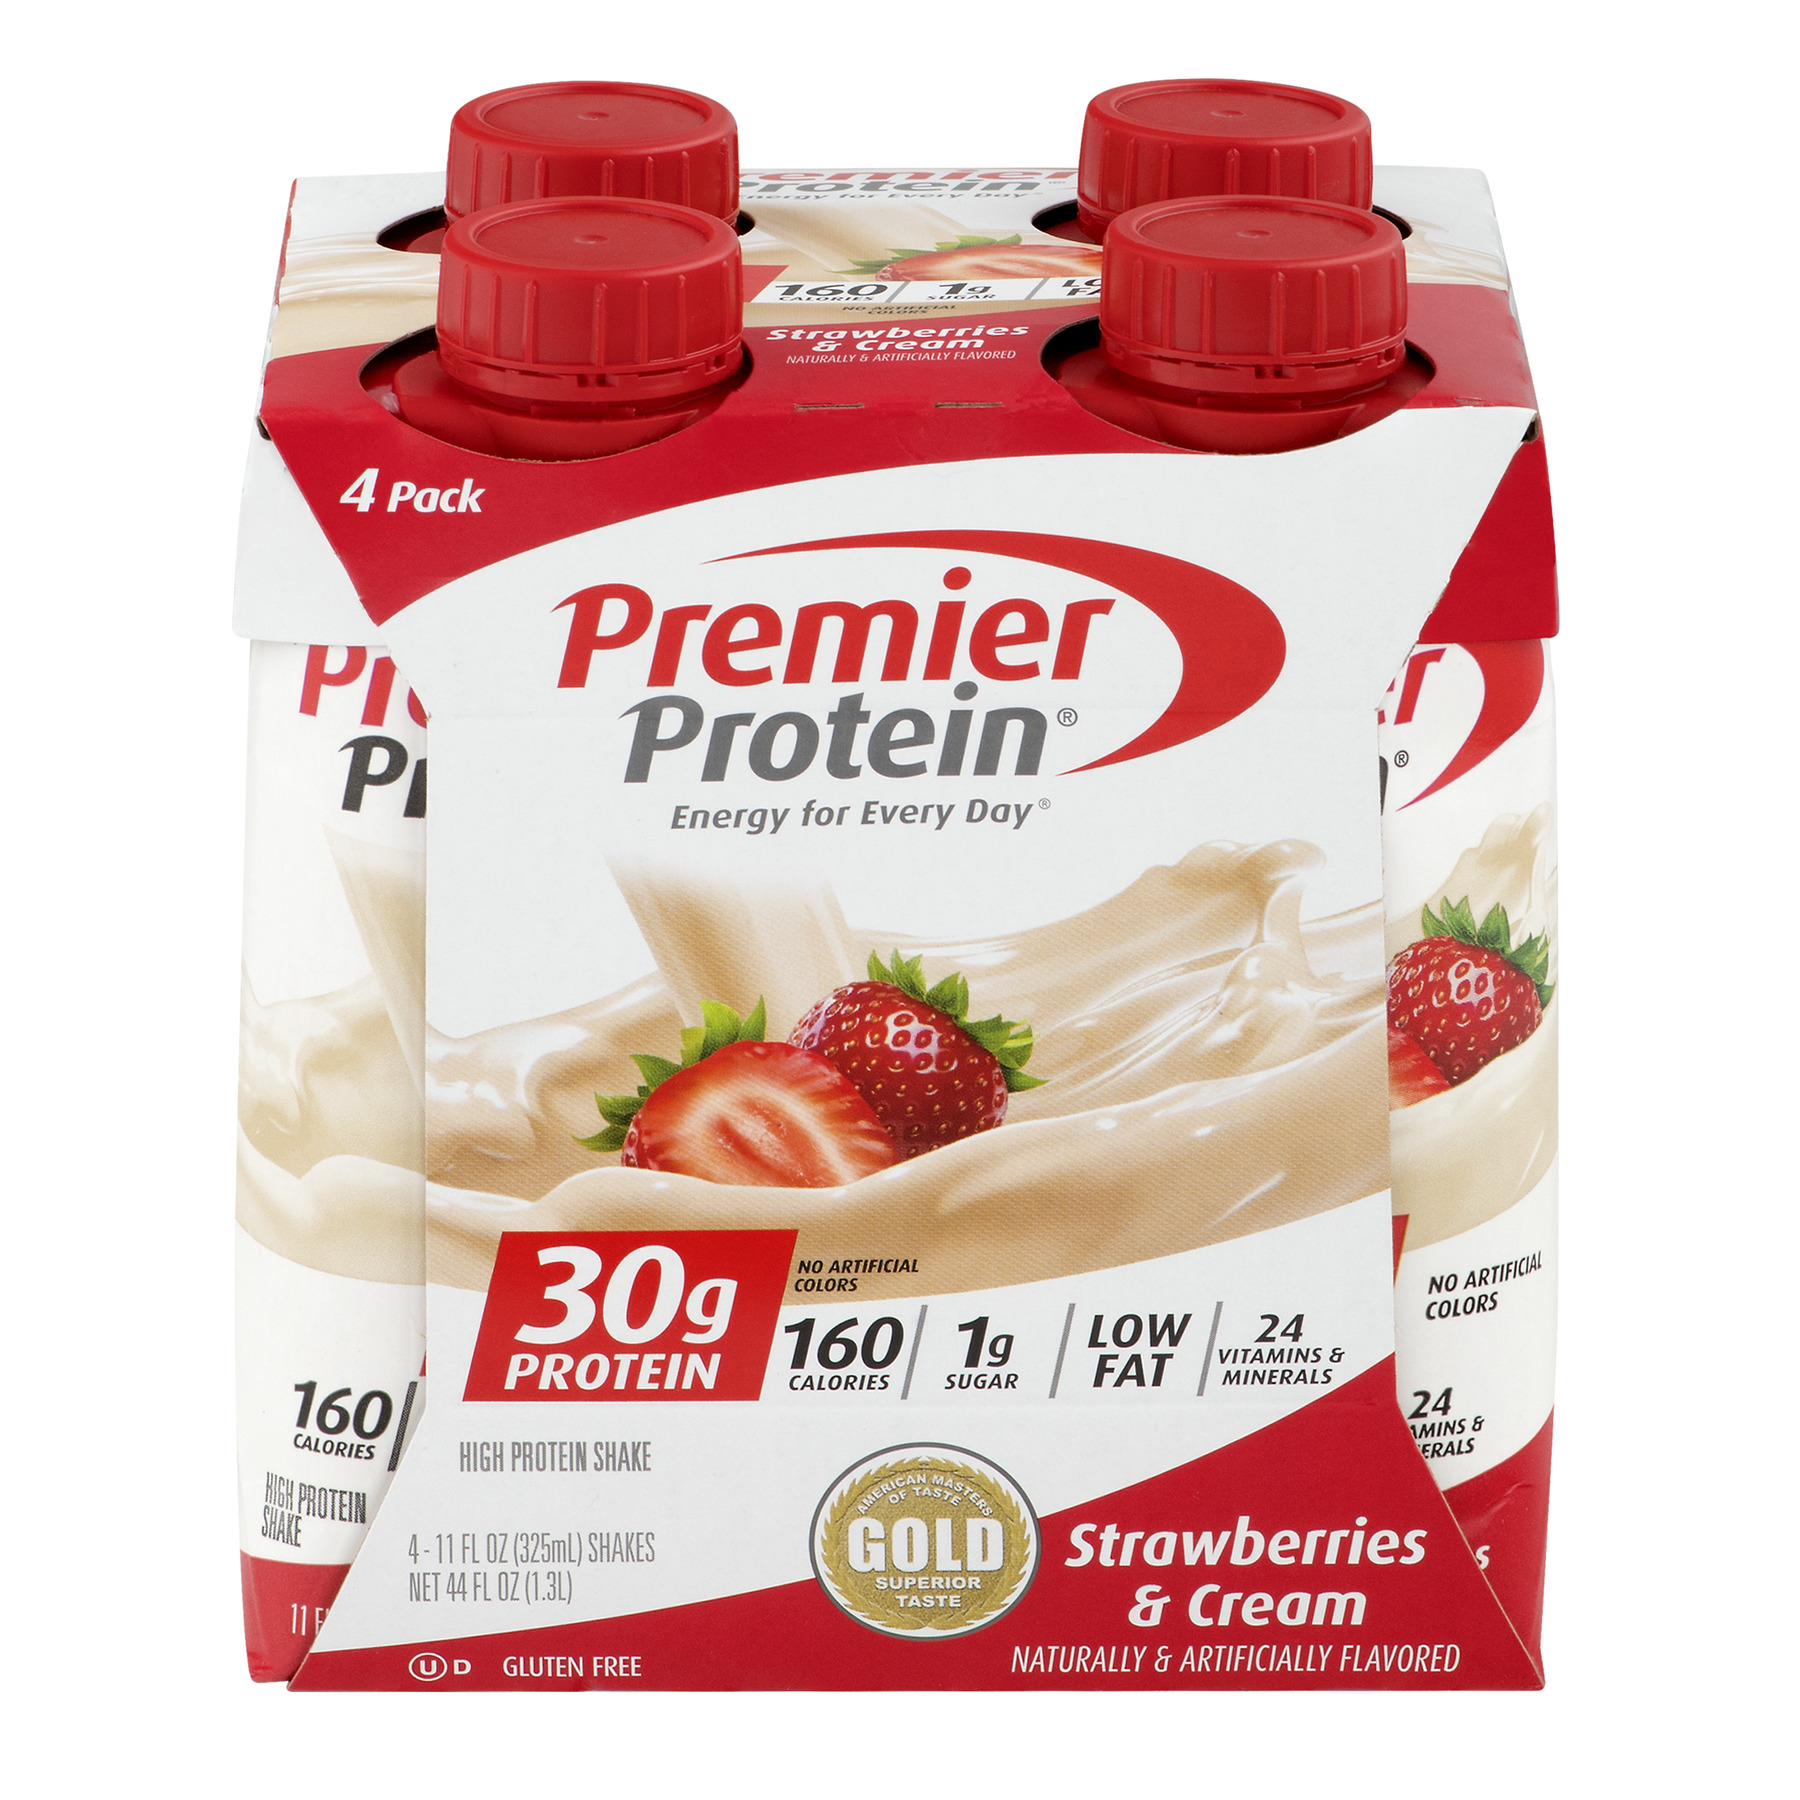 Premier Protein Shakes, Strawberries & Cream, 30g Protein, 11 Fl Oz, 4 Ct